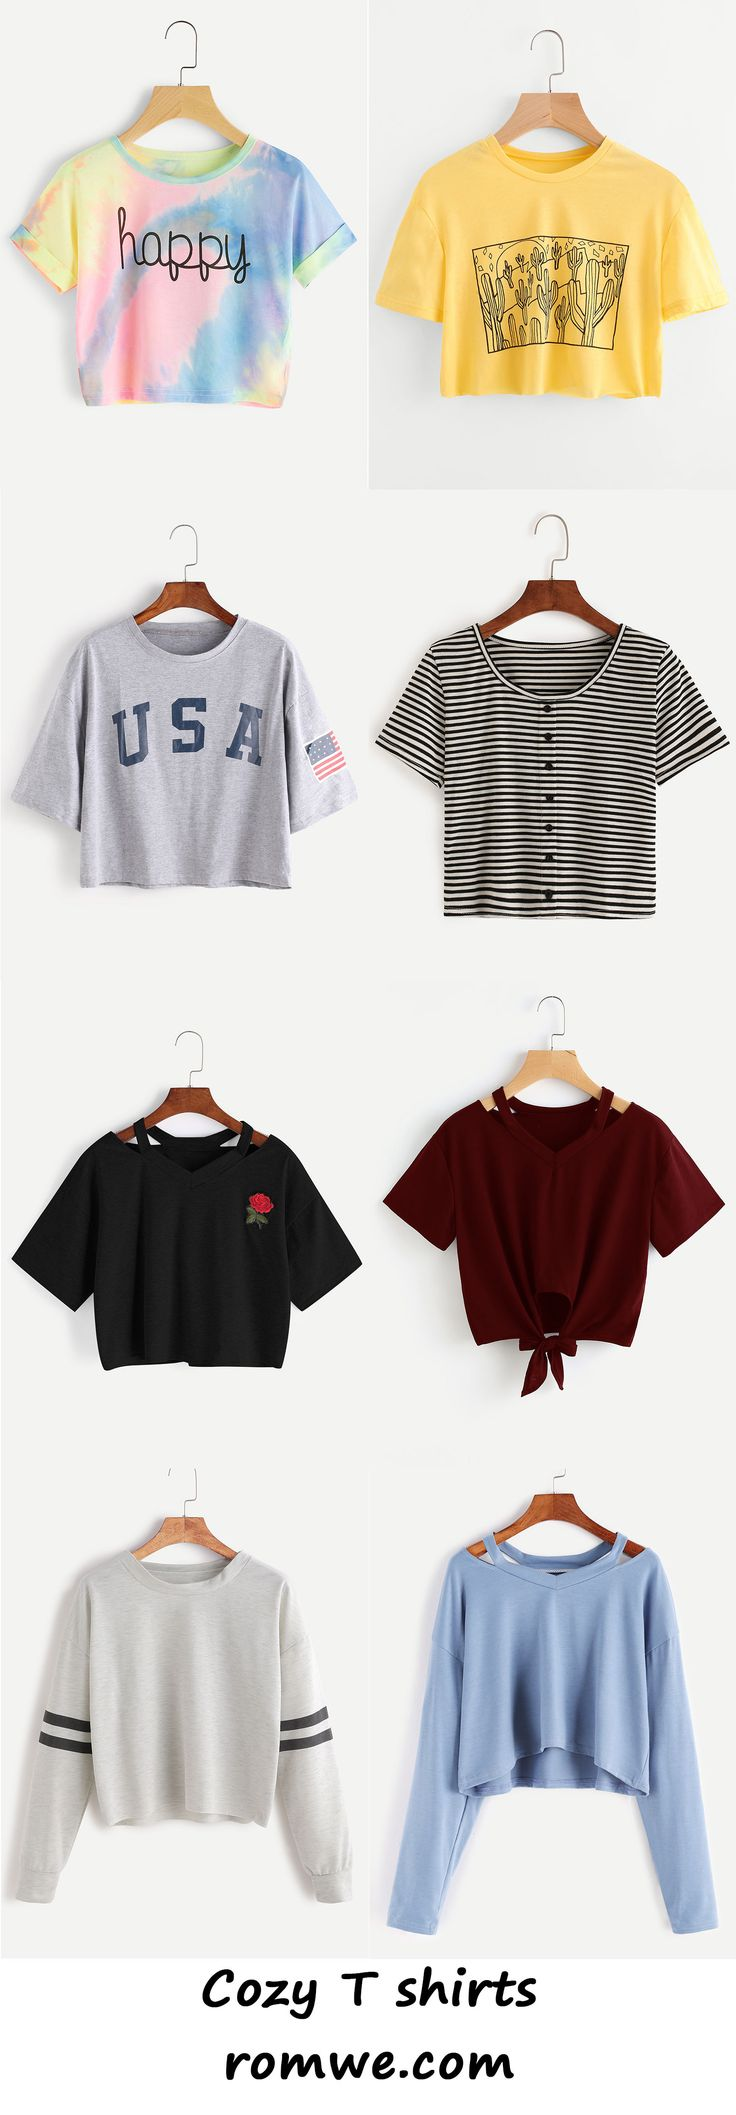 cozy t shirts with soft material and great price from romwe.com